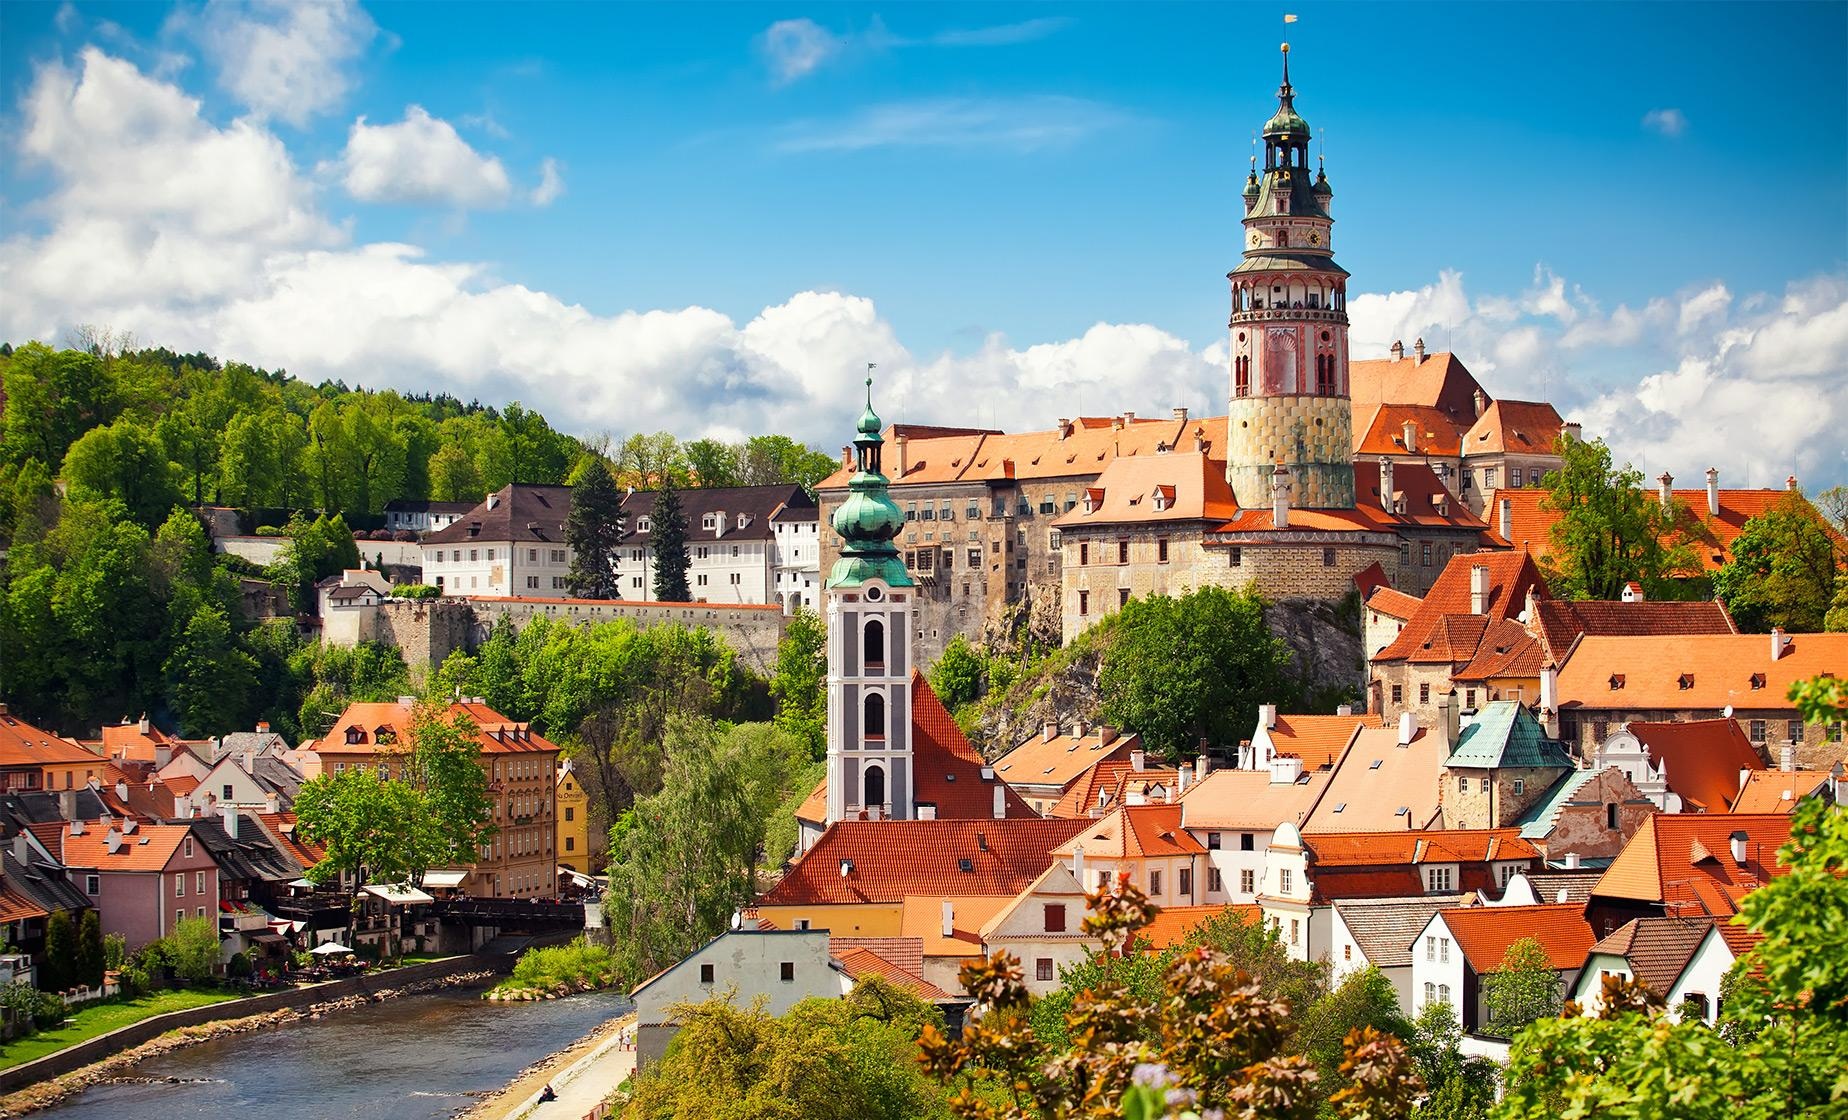 Private Tour to Cesky Krumlov from Passau - On Your Own